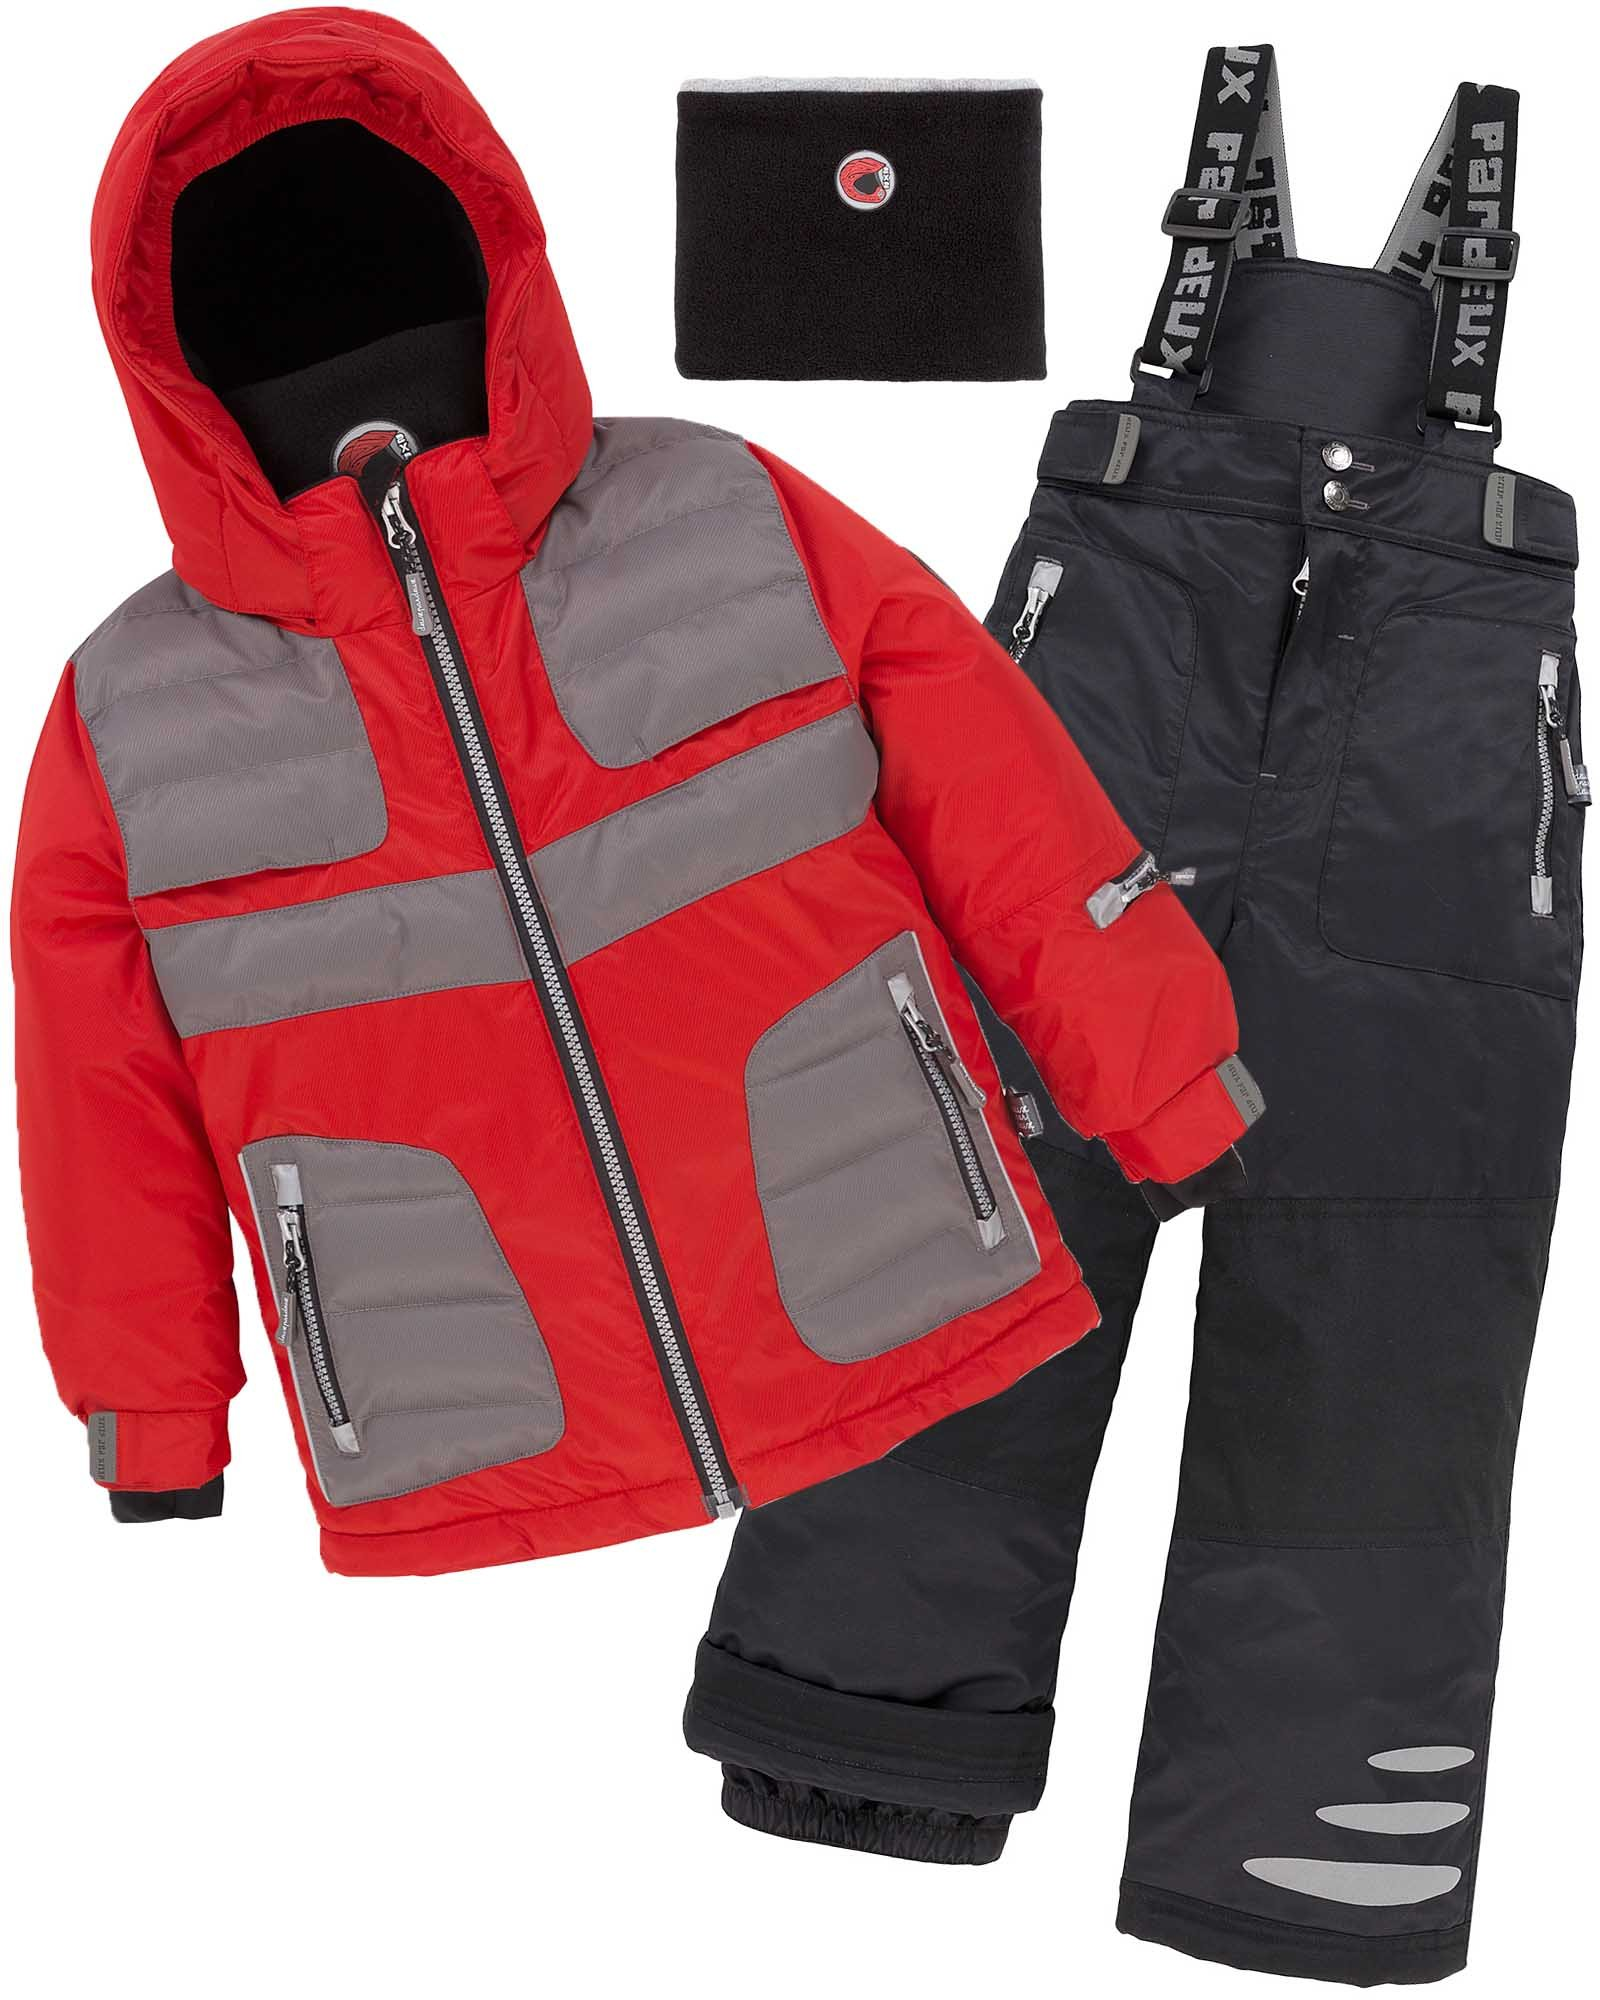 Deux par Deux Boys' 2-Piece Snowsuit Off the Mark Red, Sizes 5-14 - 8 by Deux par Deux